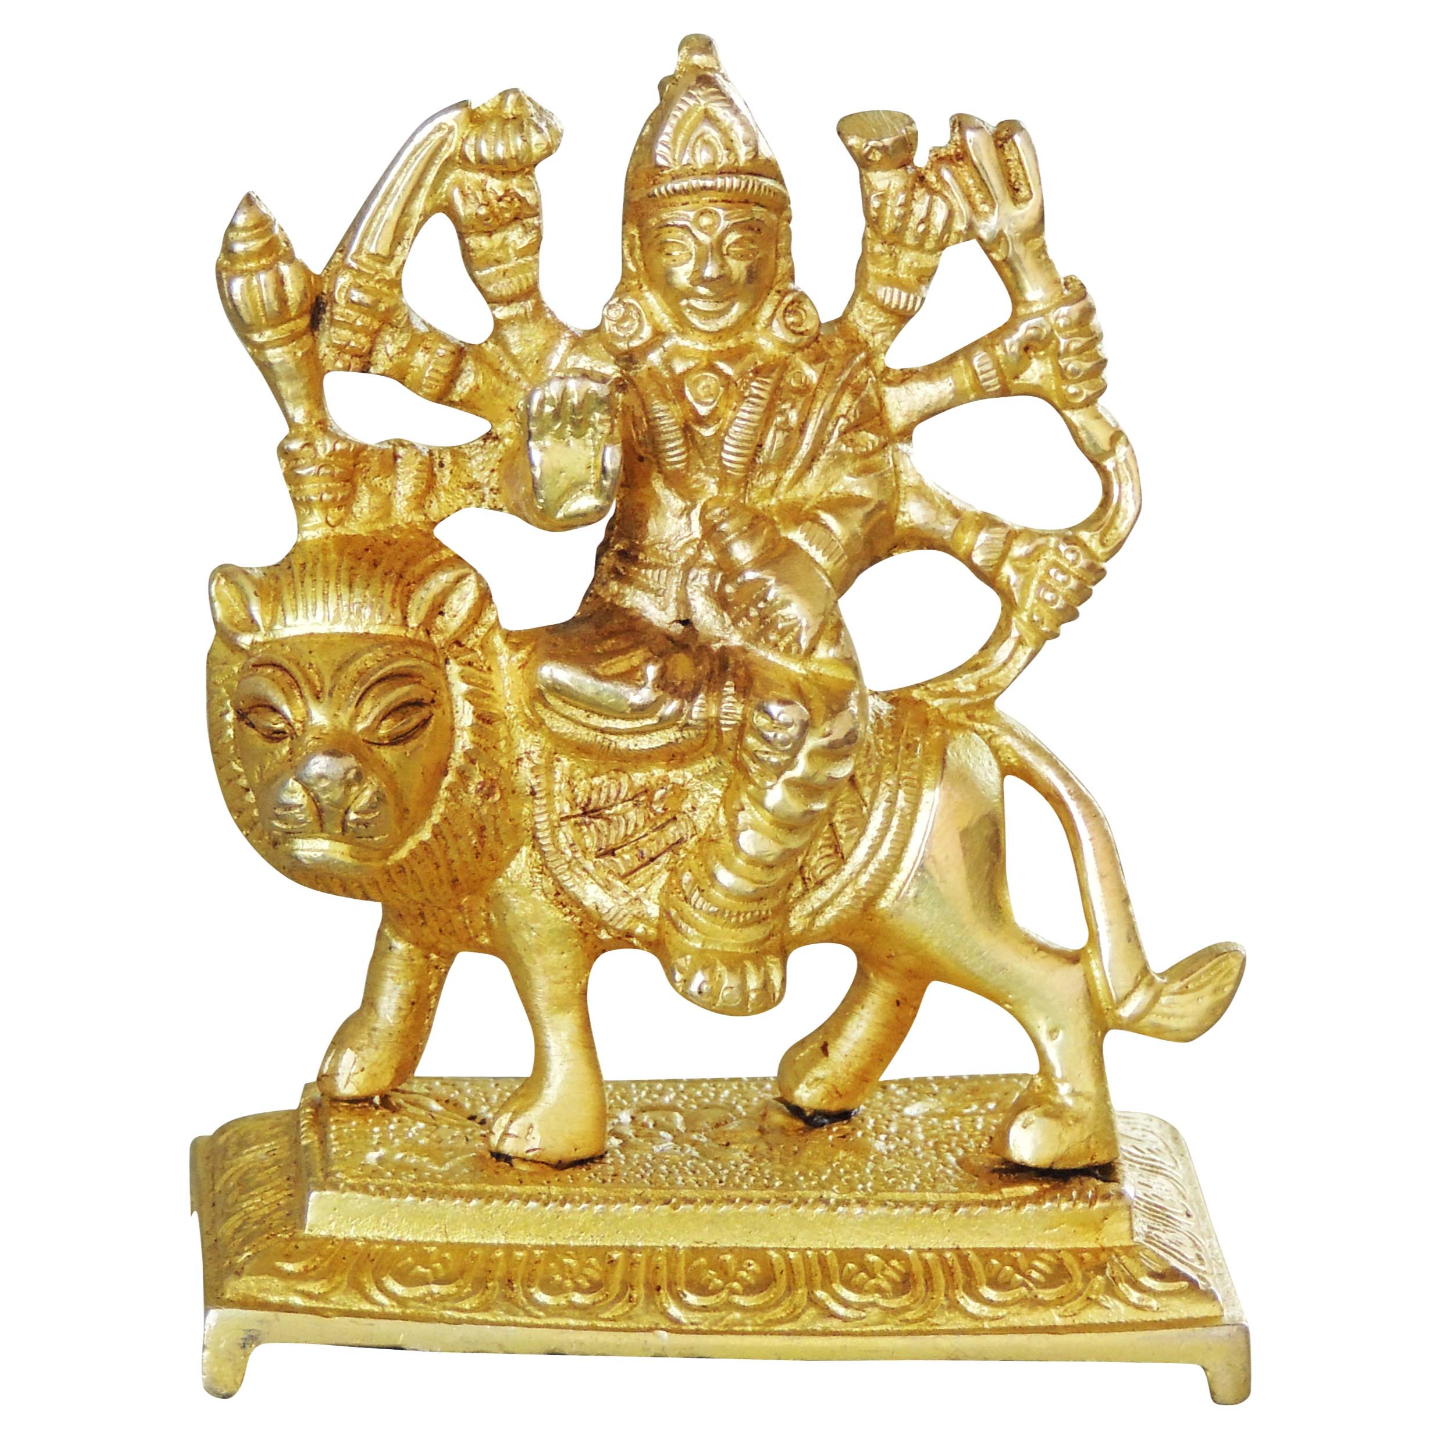 Brass Durgaji Small In Natural Brass Finish - 3.5 inch (BS1044 D)